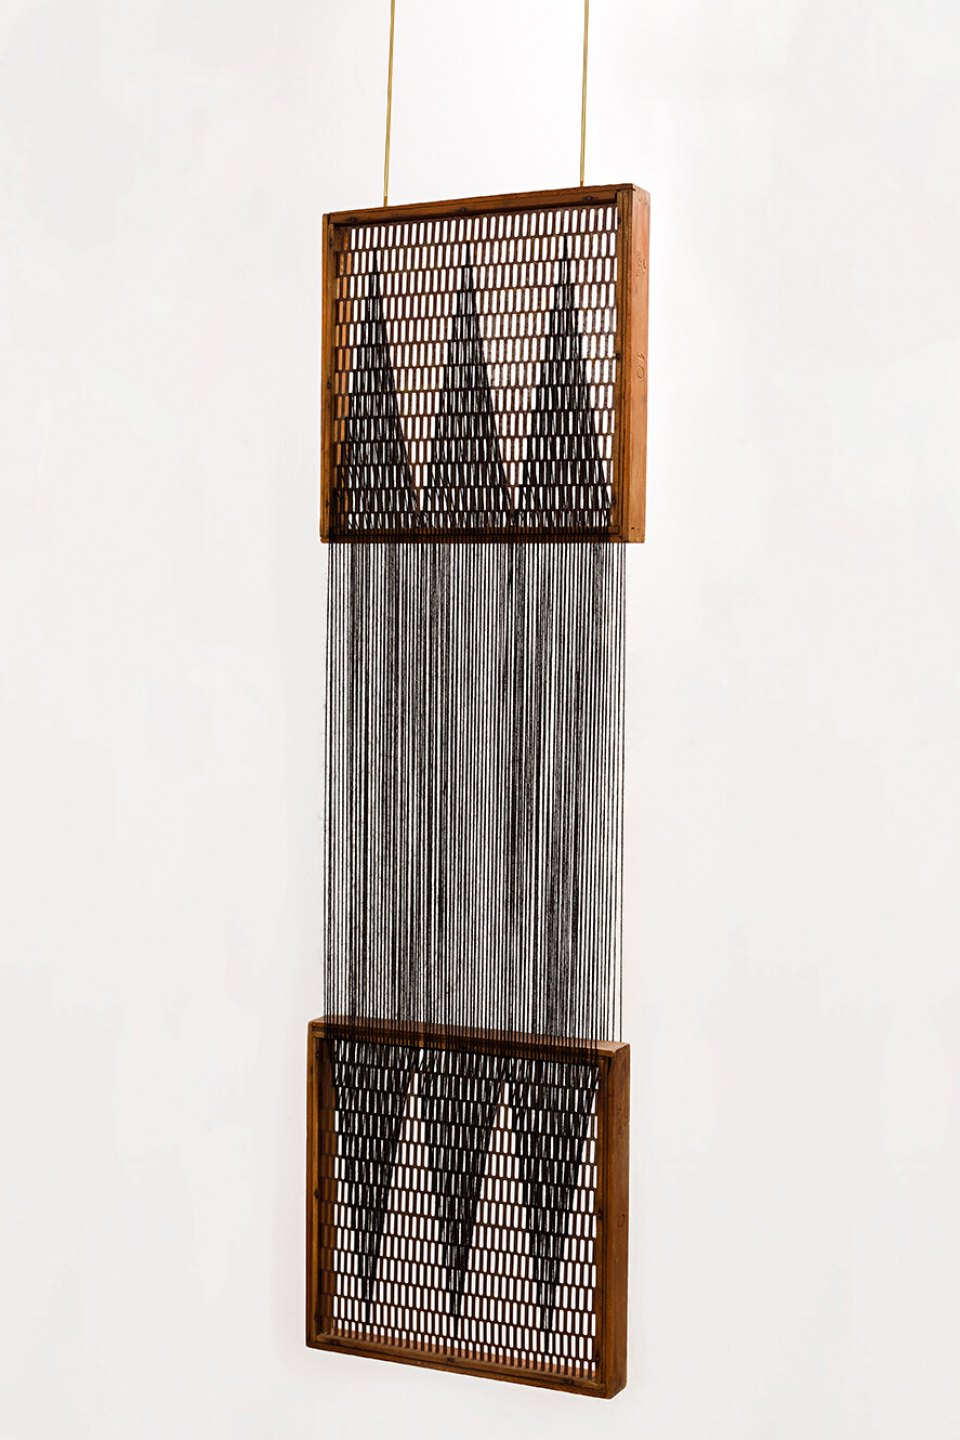 Paloma Bosquê, <em>On provisory interaction (geometry of relations #1)</em>, 2012, coffee sieve, wool and brass rods, 102 × 30 cm - Mendes Wood DM